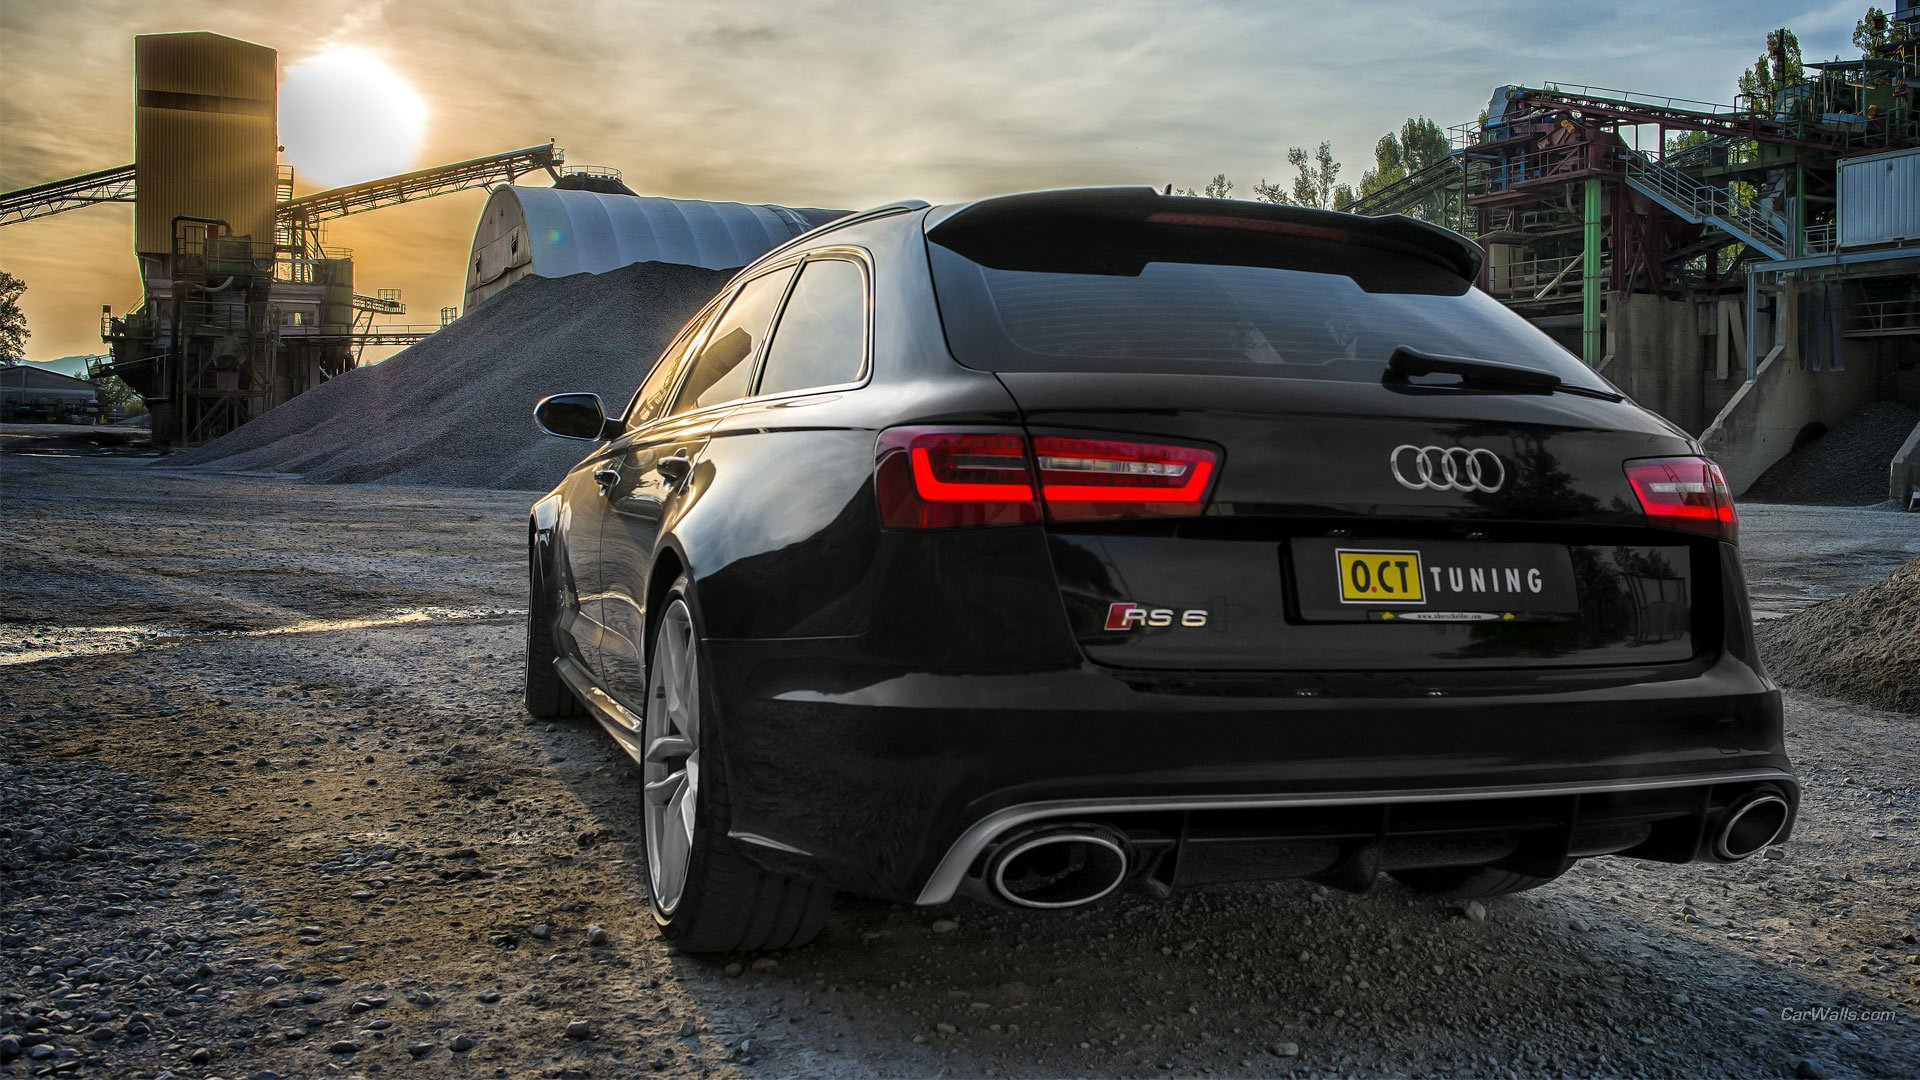 1920x1080 - Audi RS6 Wallpapers 7